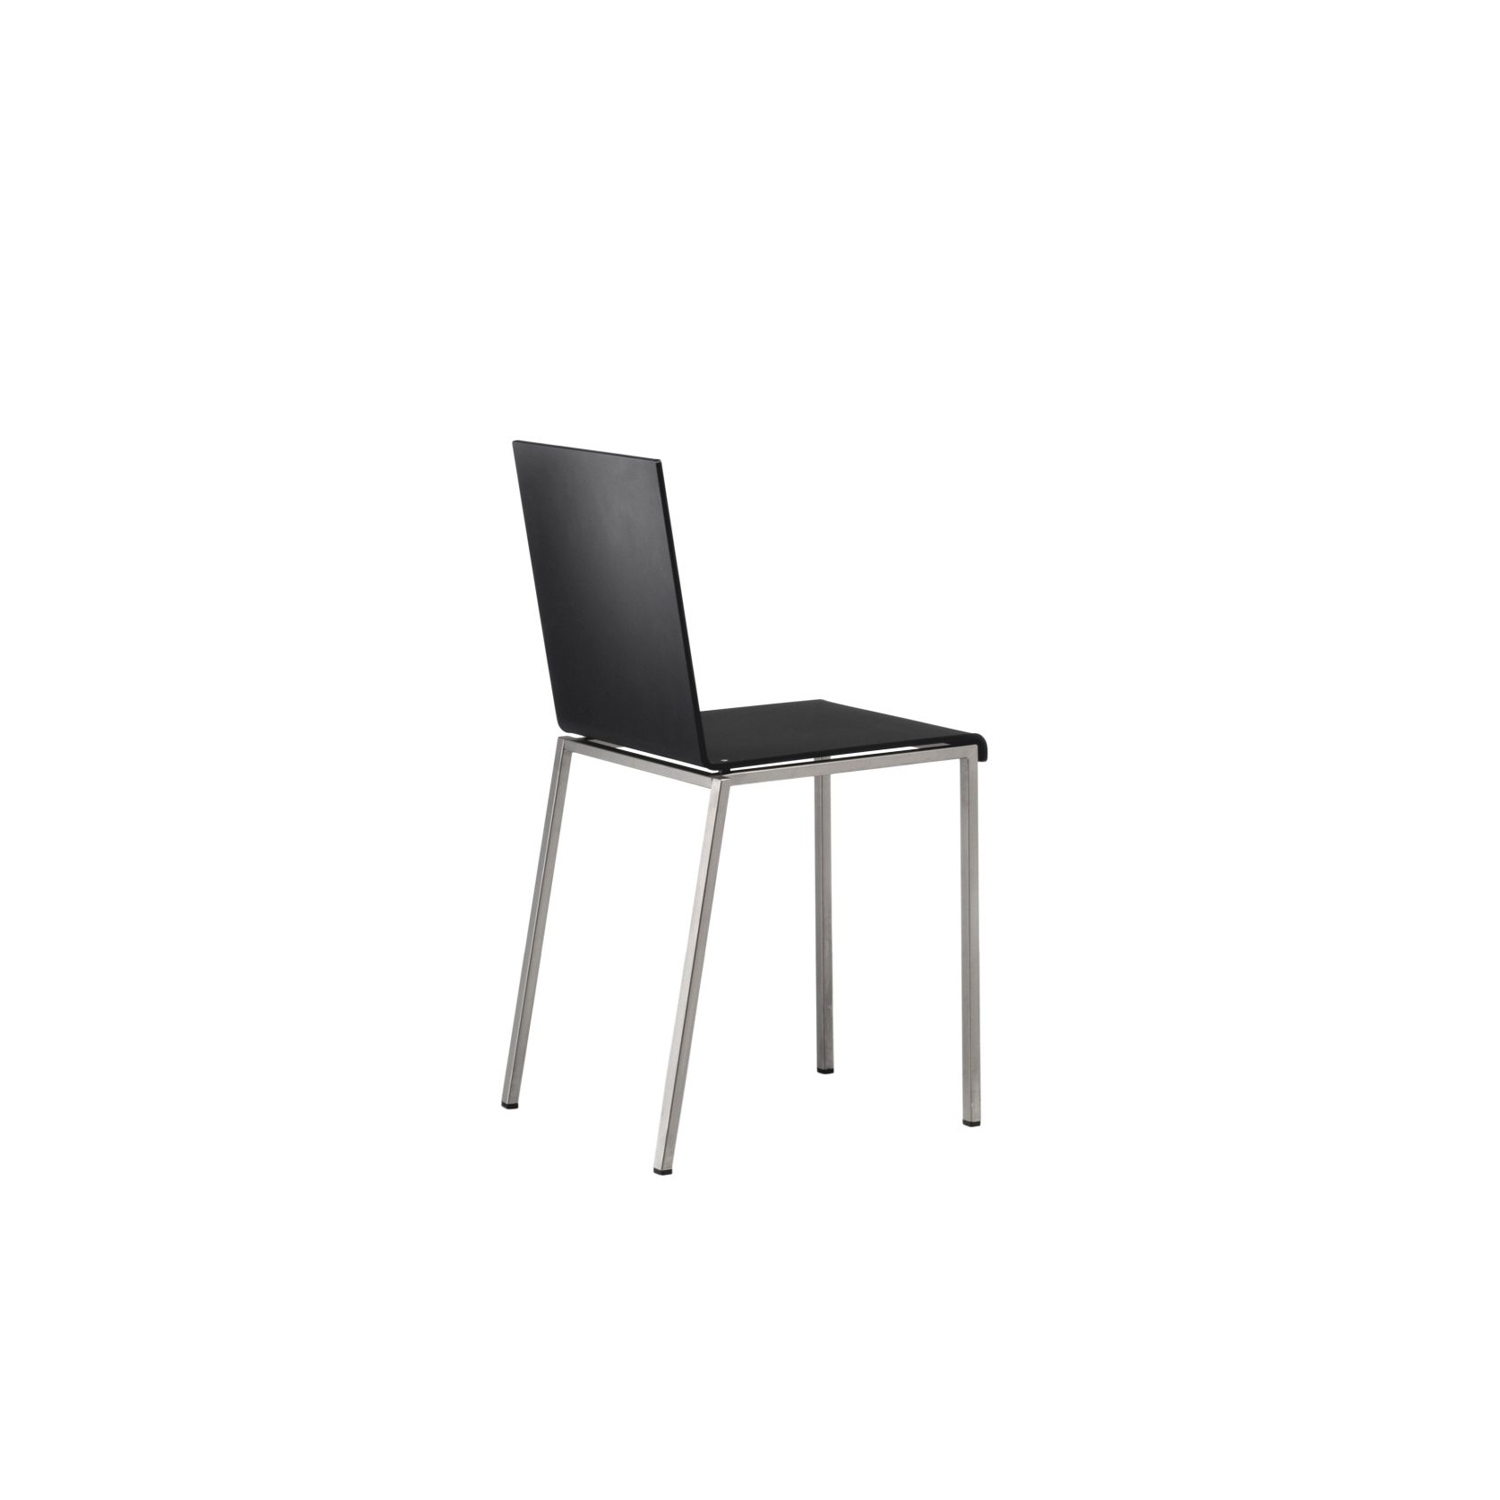 Bianca Chair - The Bianca Chair was designed in 2003 by Doriana & Massimiliano Fuksas. This elegant and sleek chair comes in an all-black steel tube frame which can be epoxy painted semi opaque black or white. The seat comes in  10mm pressed acrylic resin and can be either Opaline White or Opaque Black. This chair is perfectly suited to restaurants and commercial areas as well as in the home due to its effortless appearance. It is also stackable.    | Matter of Stuff